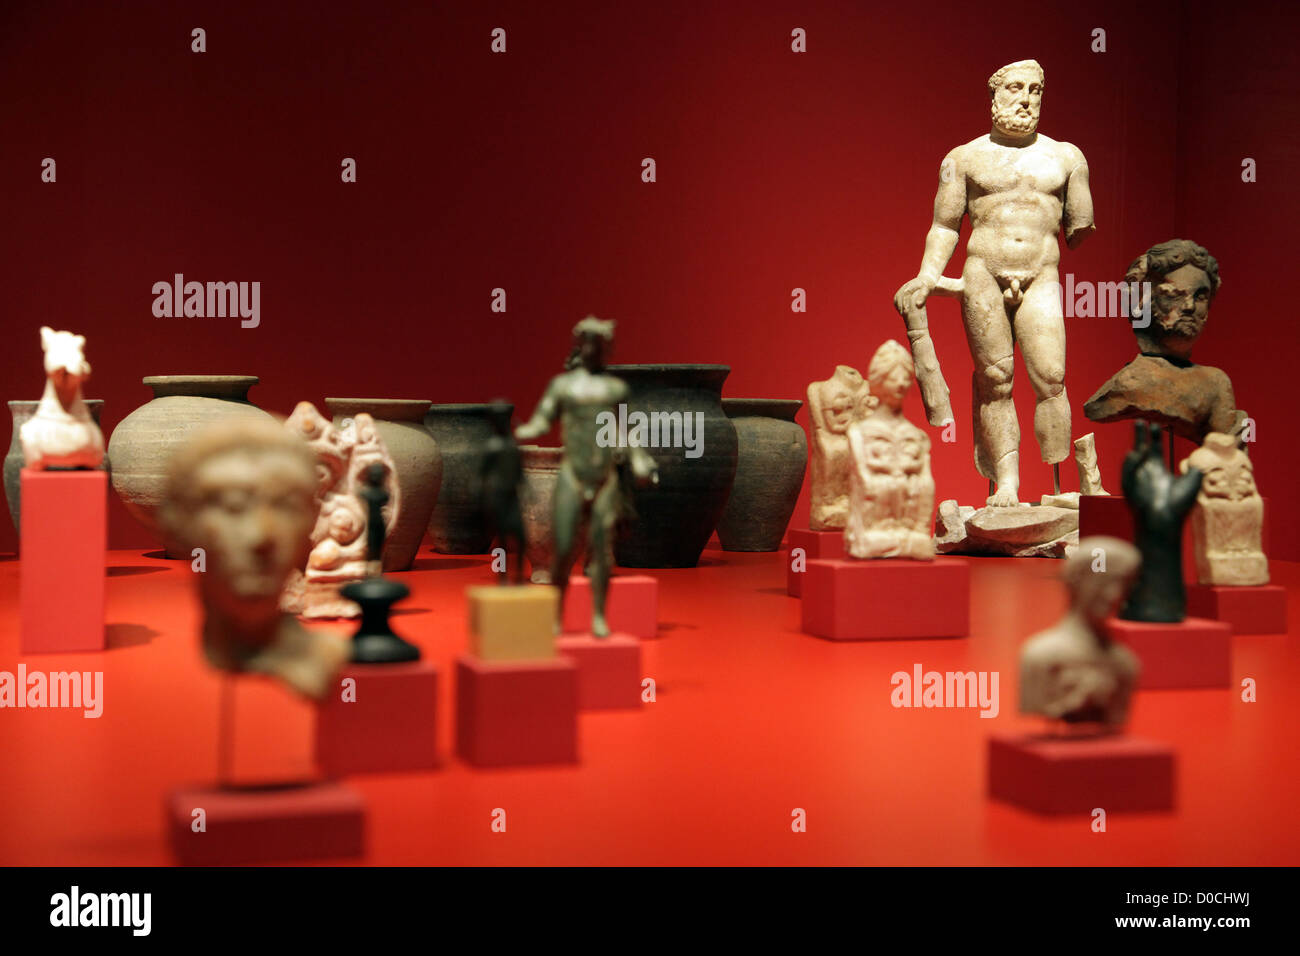 PERMANENT COLLECTION (ARCHAEOLOGY AND PREHISTORY) MUSEUM OF BRITTANY RENNES ILLE-ET-VILAINE (35) FRANCE - Stock Image